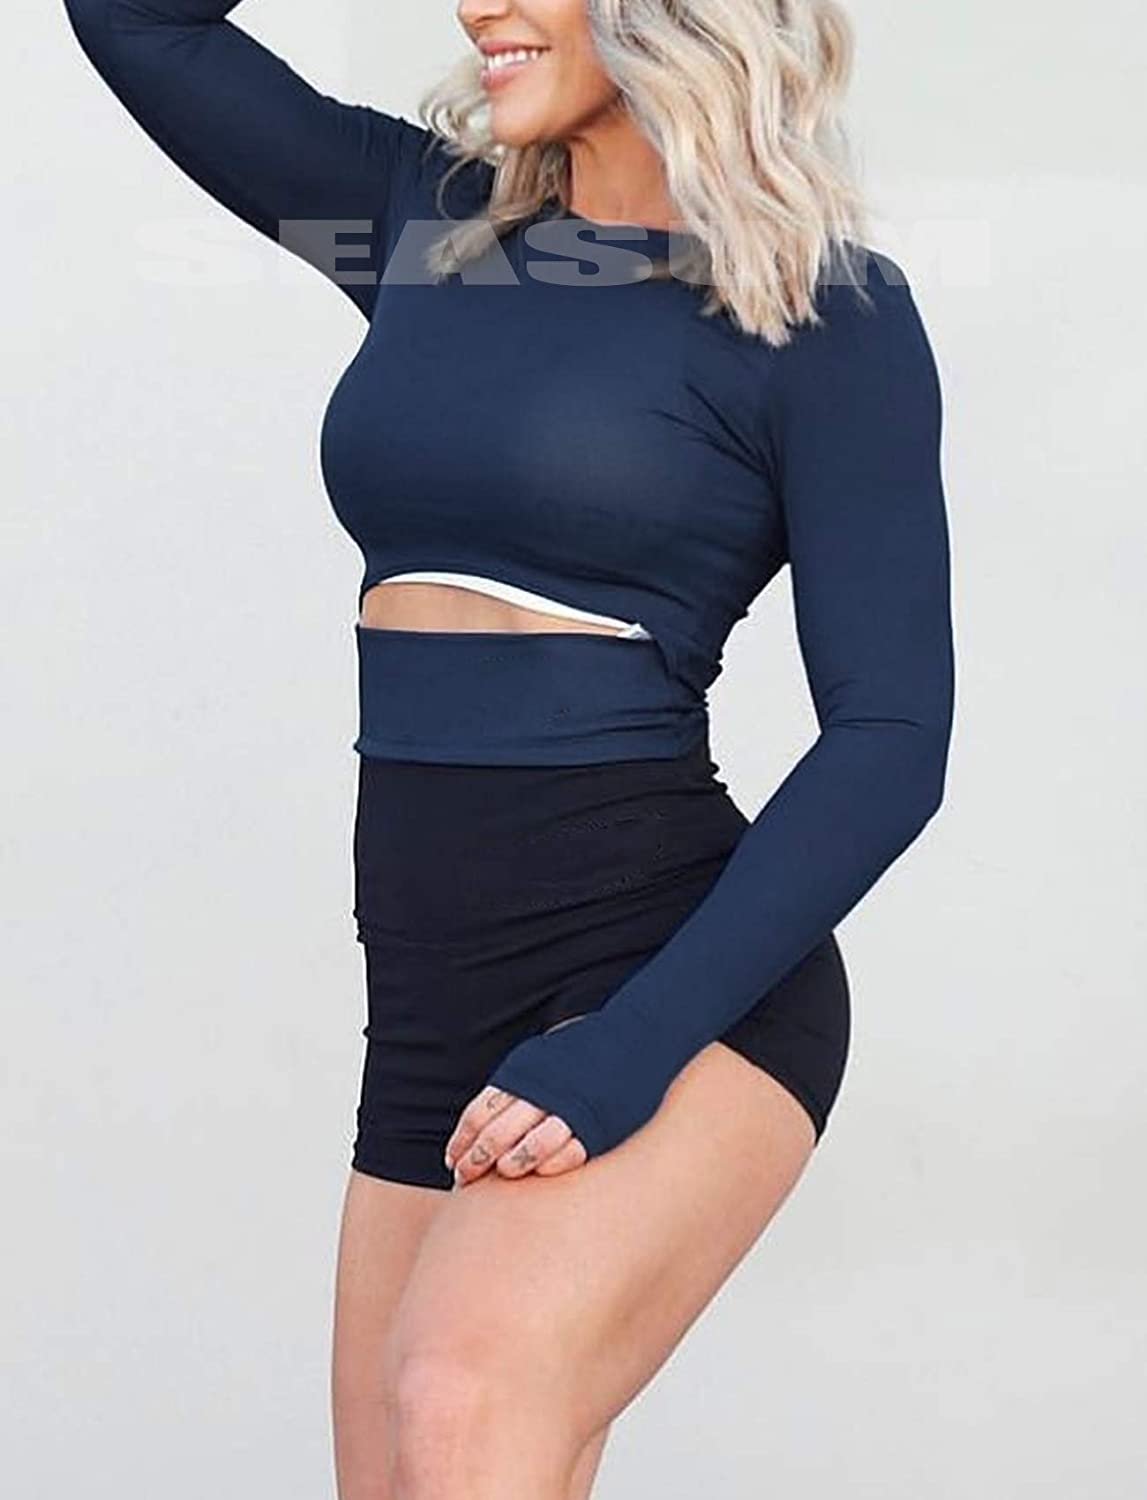 Womens Yoga Gym Crop Top Compression Workout Athletic Long Sleeve Shirt